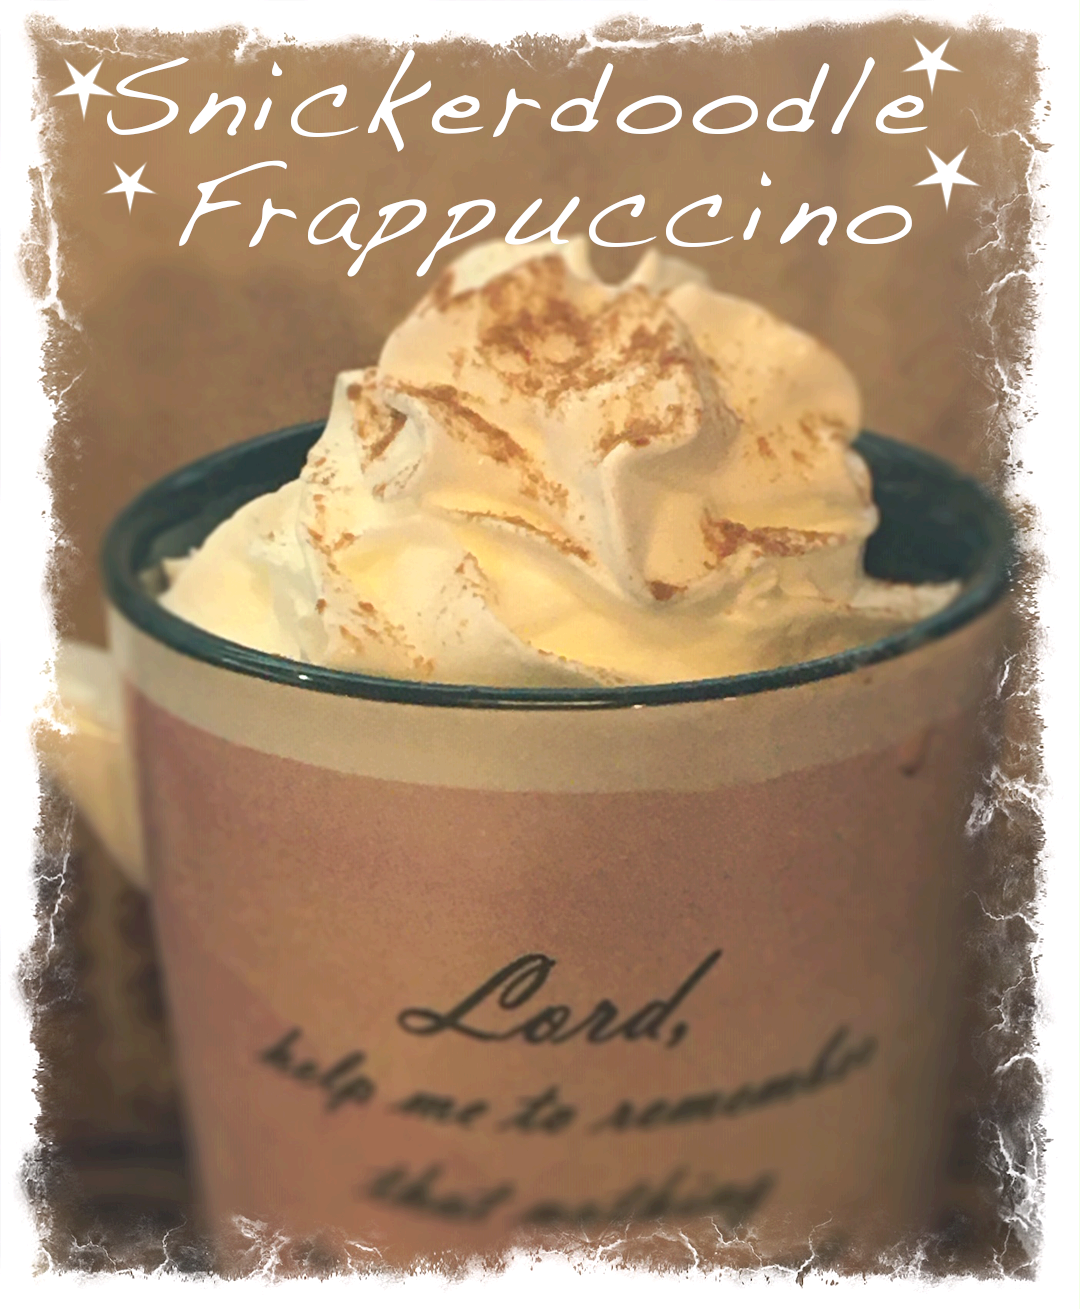 Snickerdoodle Frappuccino -Blended Coffee